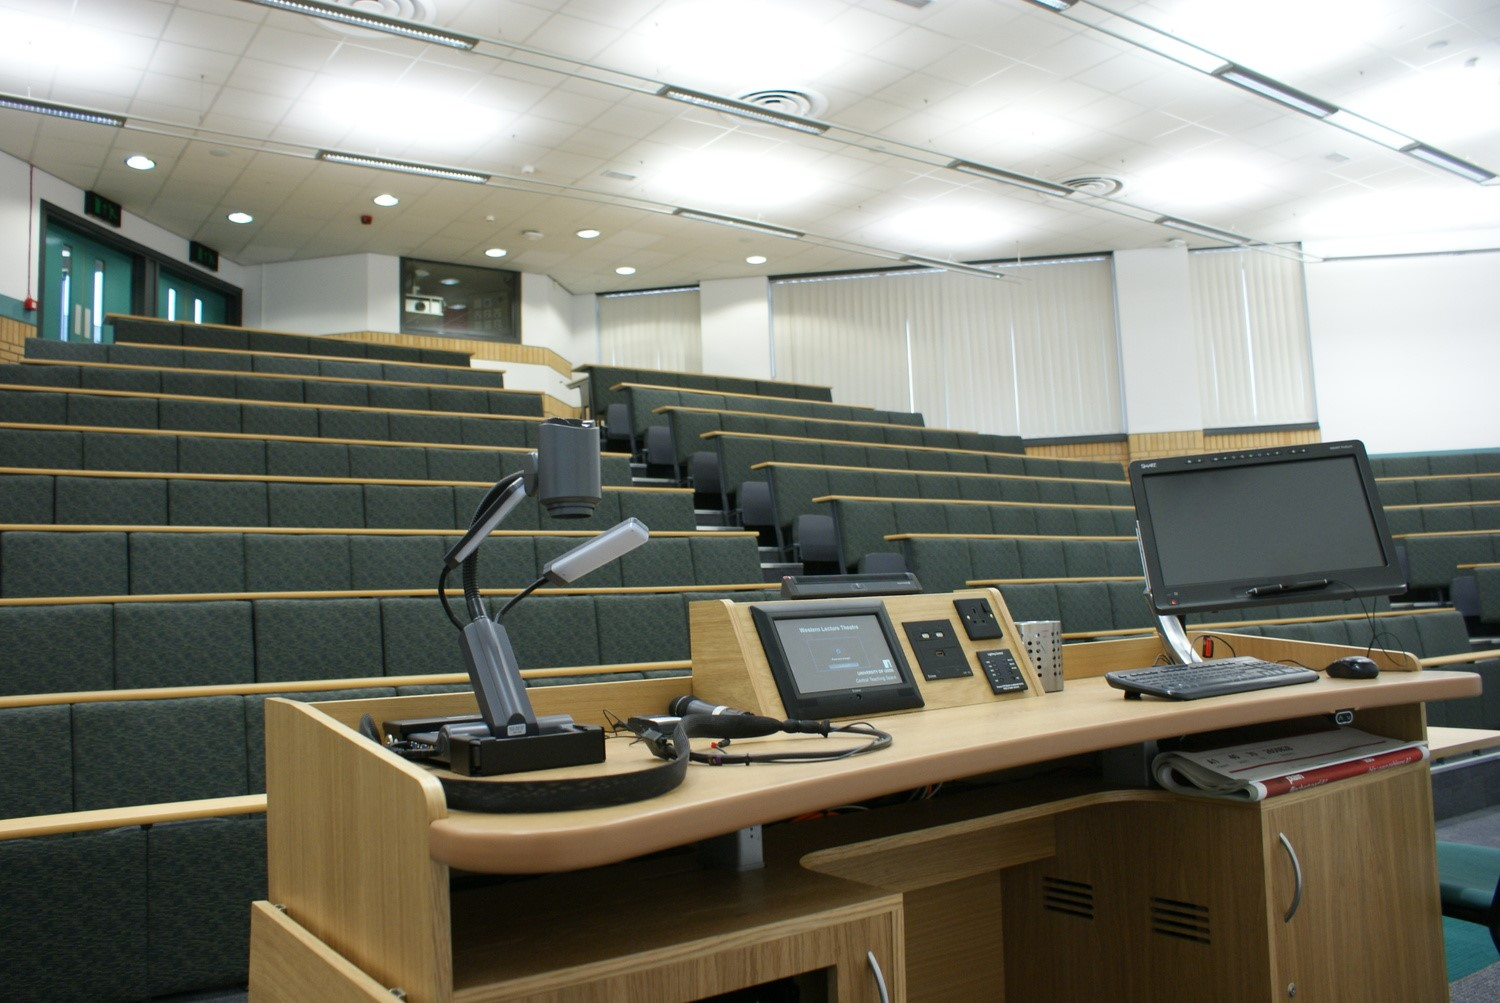 Western Lecture Theatre, Business School - CTS 2013